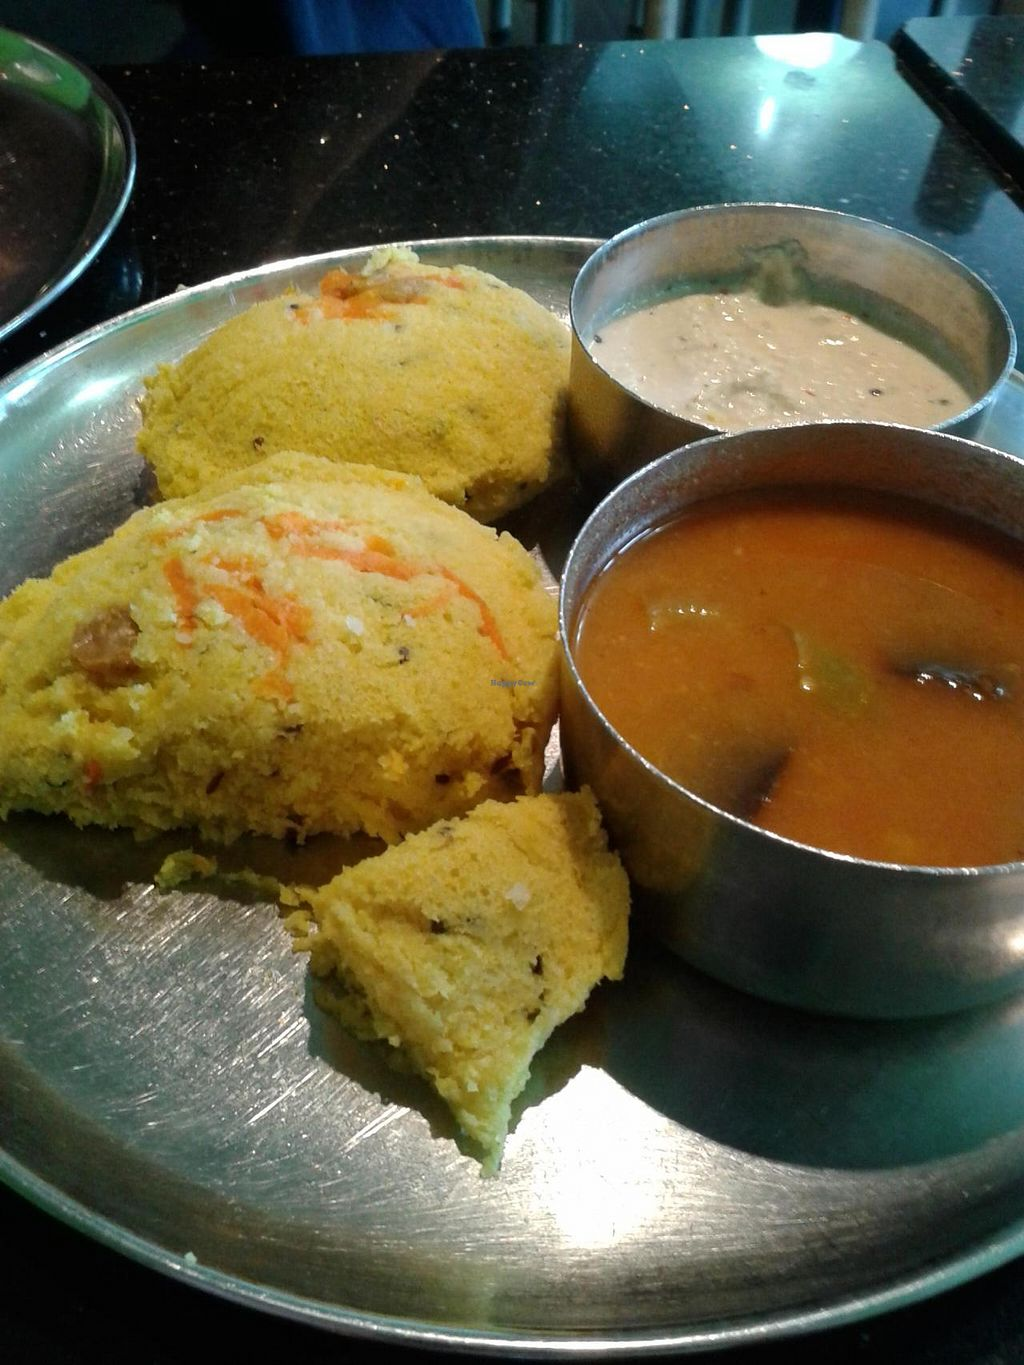 """Photo of Udupi Palace  by <a href=""""/members/profile/chobesoy"""">chobesoy</a> <br/>Kancheepurum Idli, a rice and lentil patty with cashews, ginger, coriander, available only on weekends <br/> October 24, 2014  - <a href='/contact/abuse/image/1605/83803'>Report</a>"""